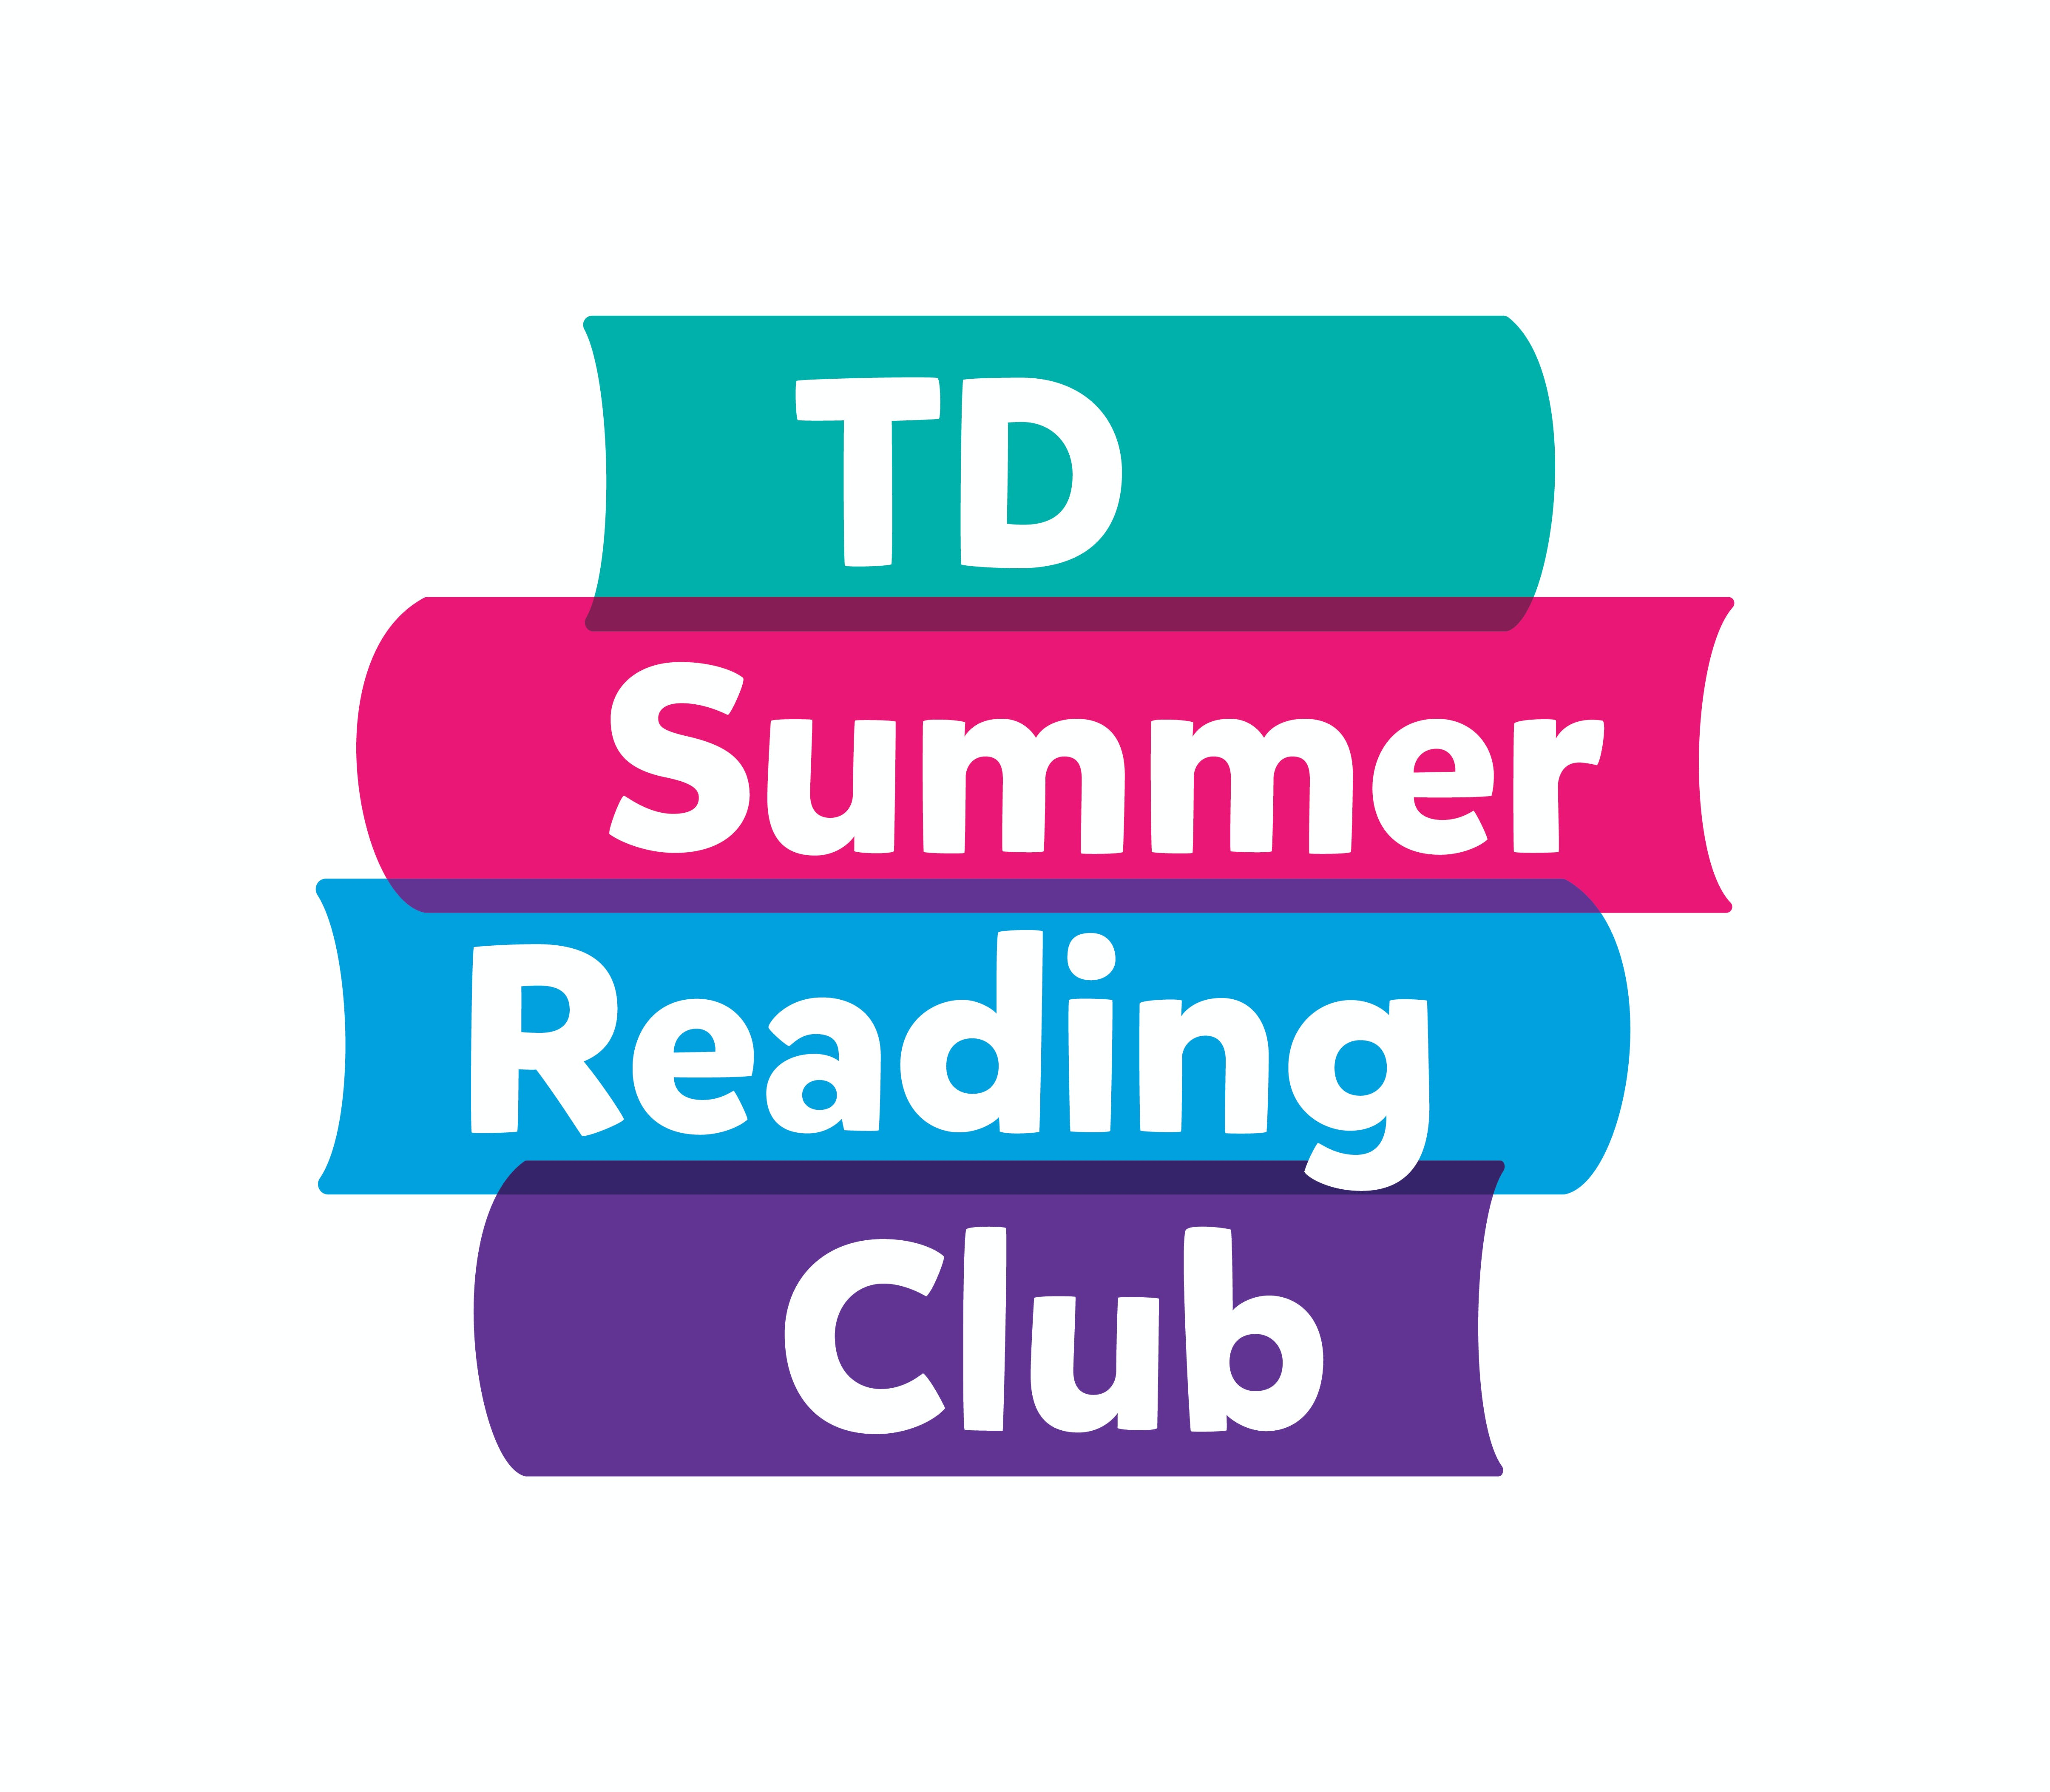 This is an image of the TD Summer Reading Club logo.